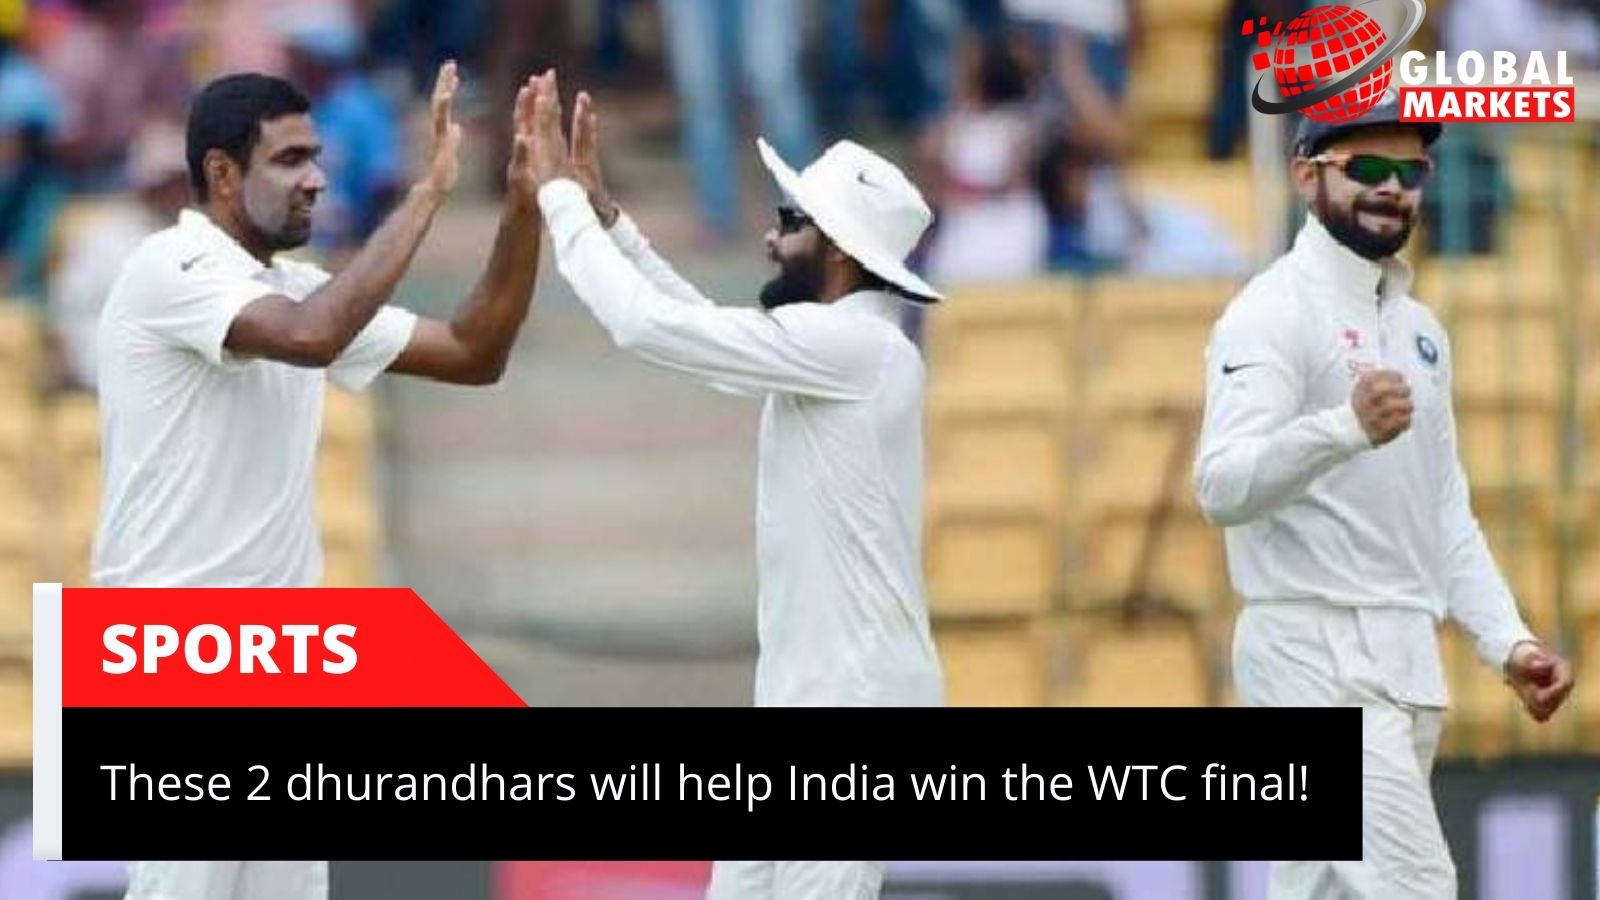 These Two Players will help India win the WTC final!'